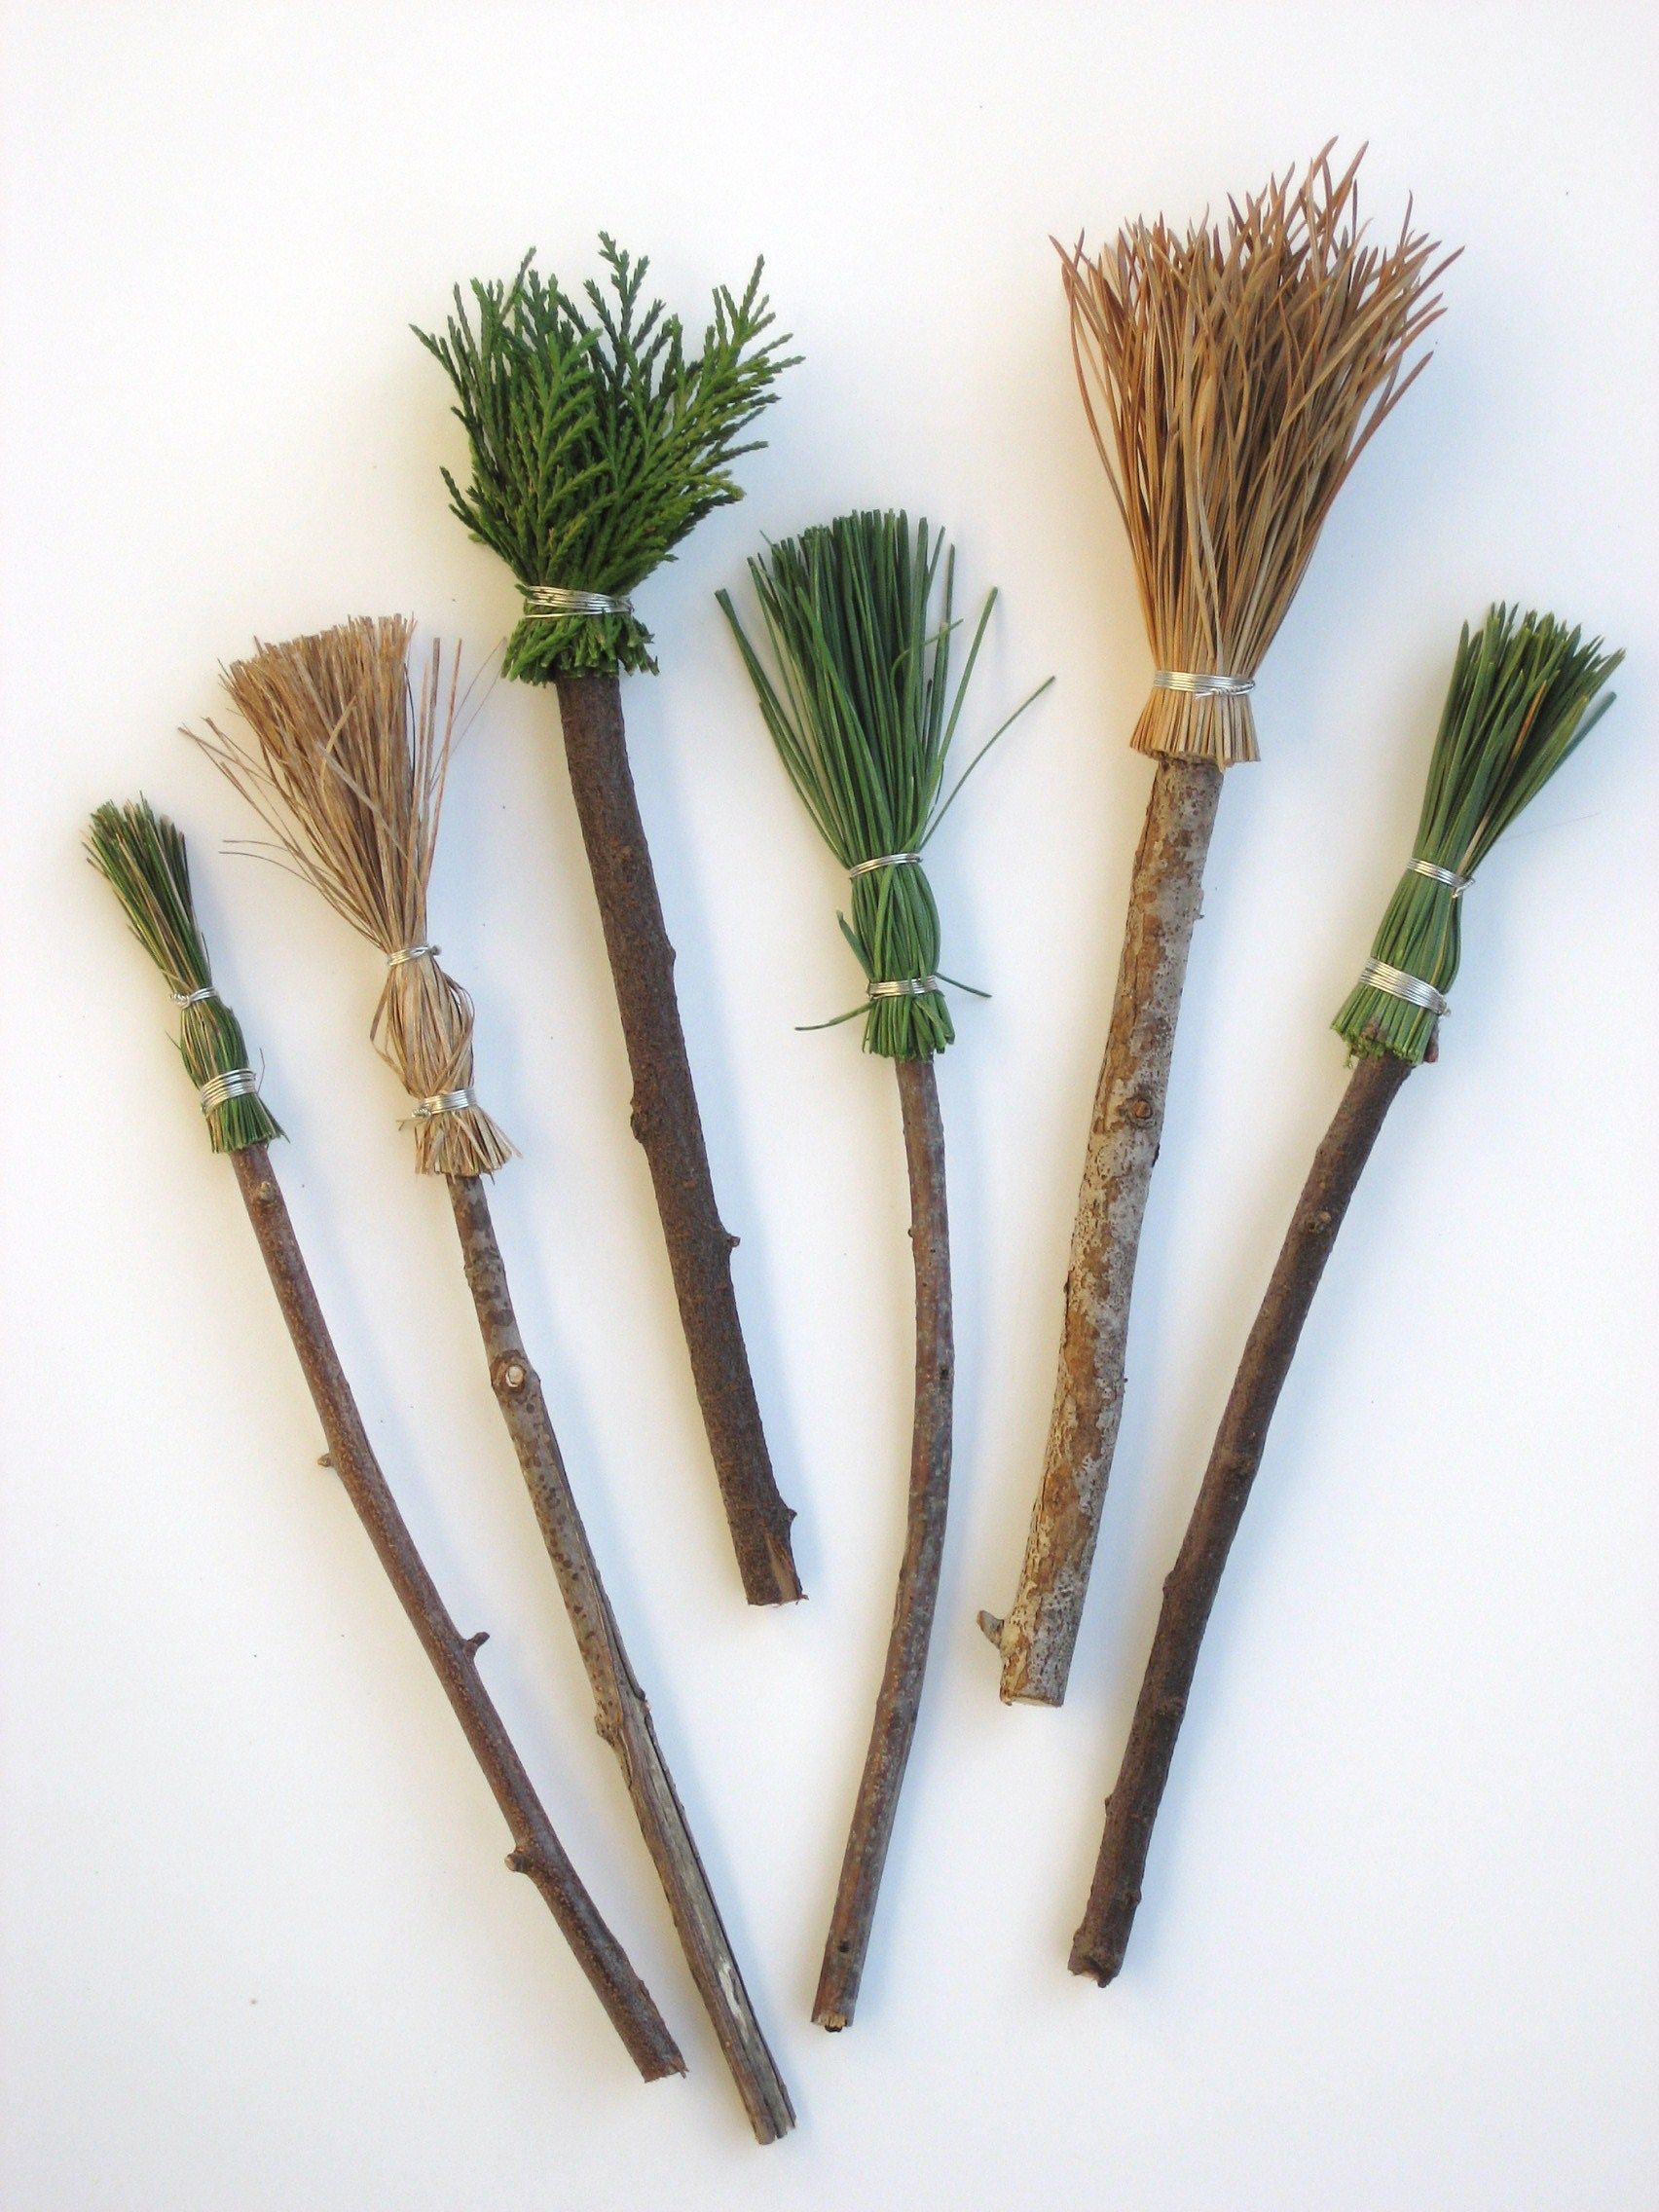 Your child can make some brooms or paintbrushes from nature.......so sweet